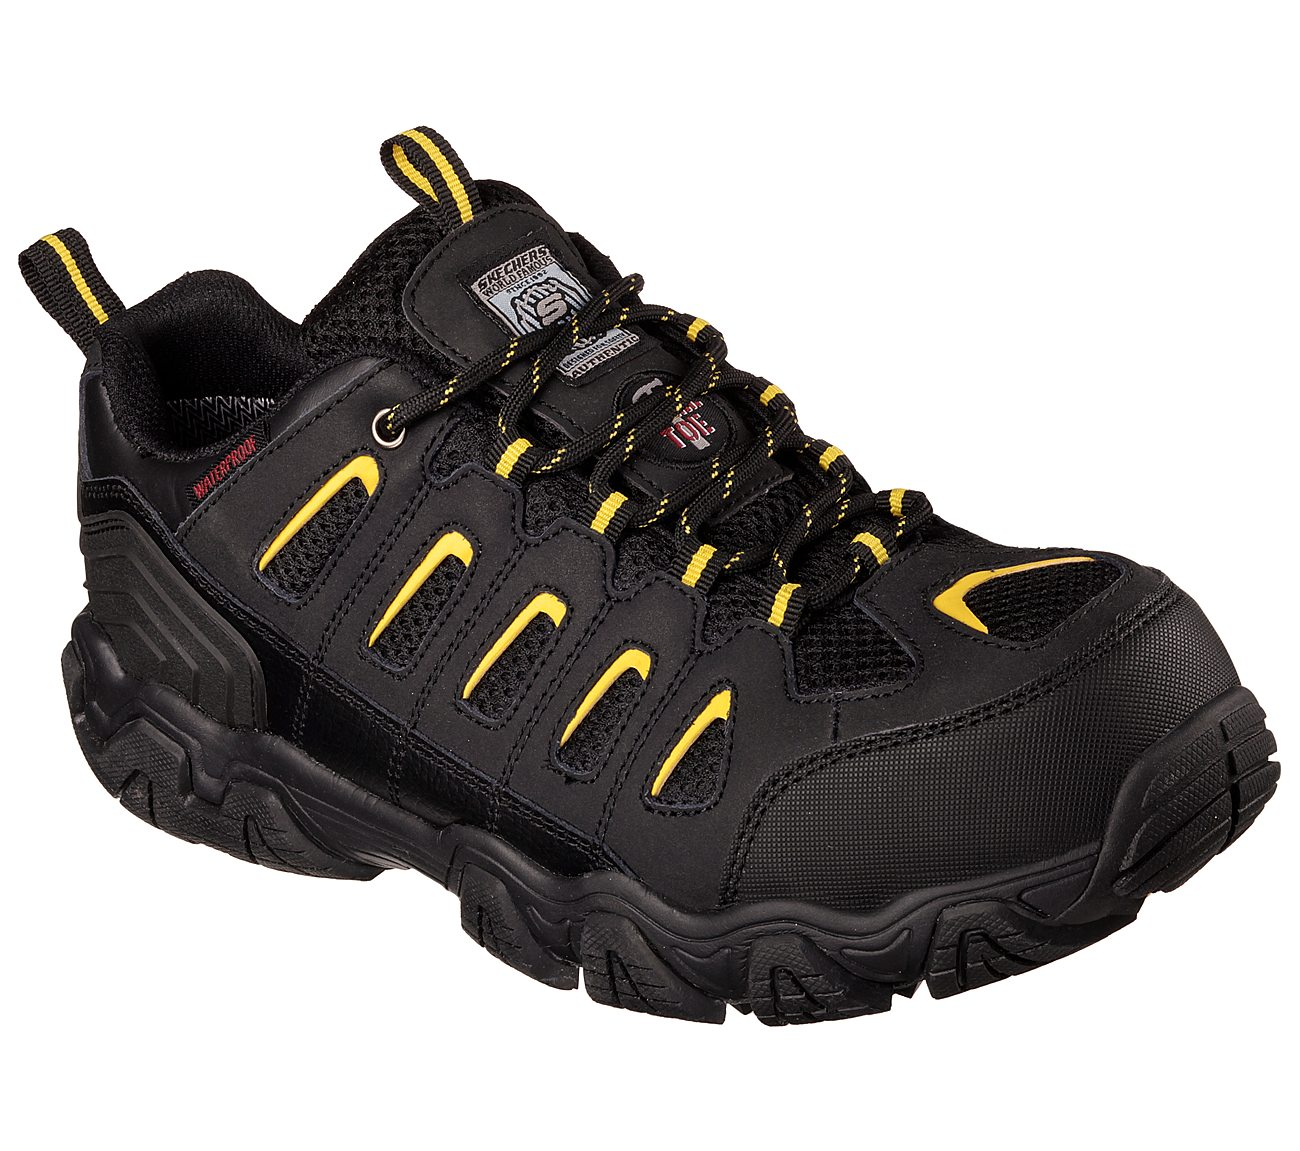 Skechers Extra Wide Work Shoes